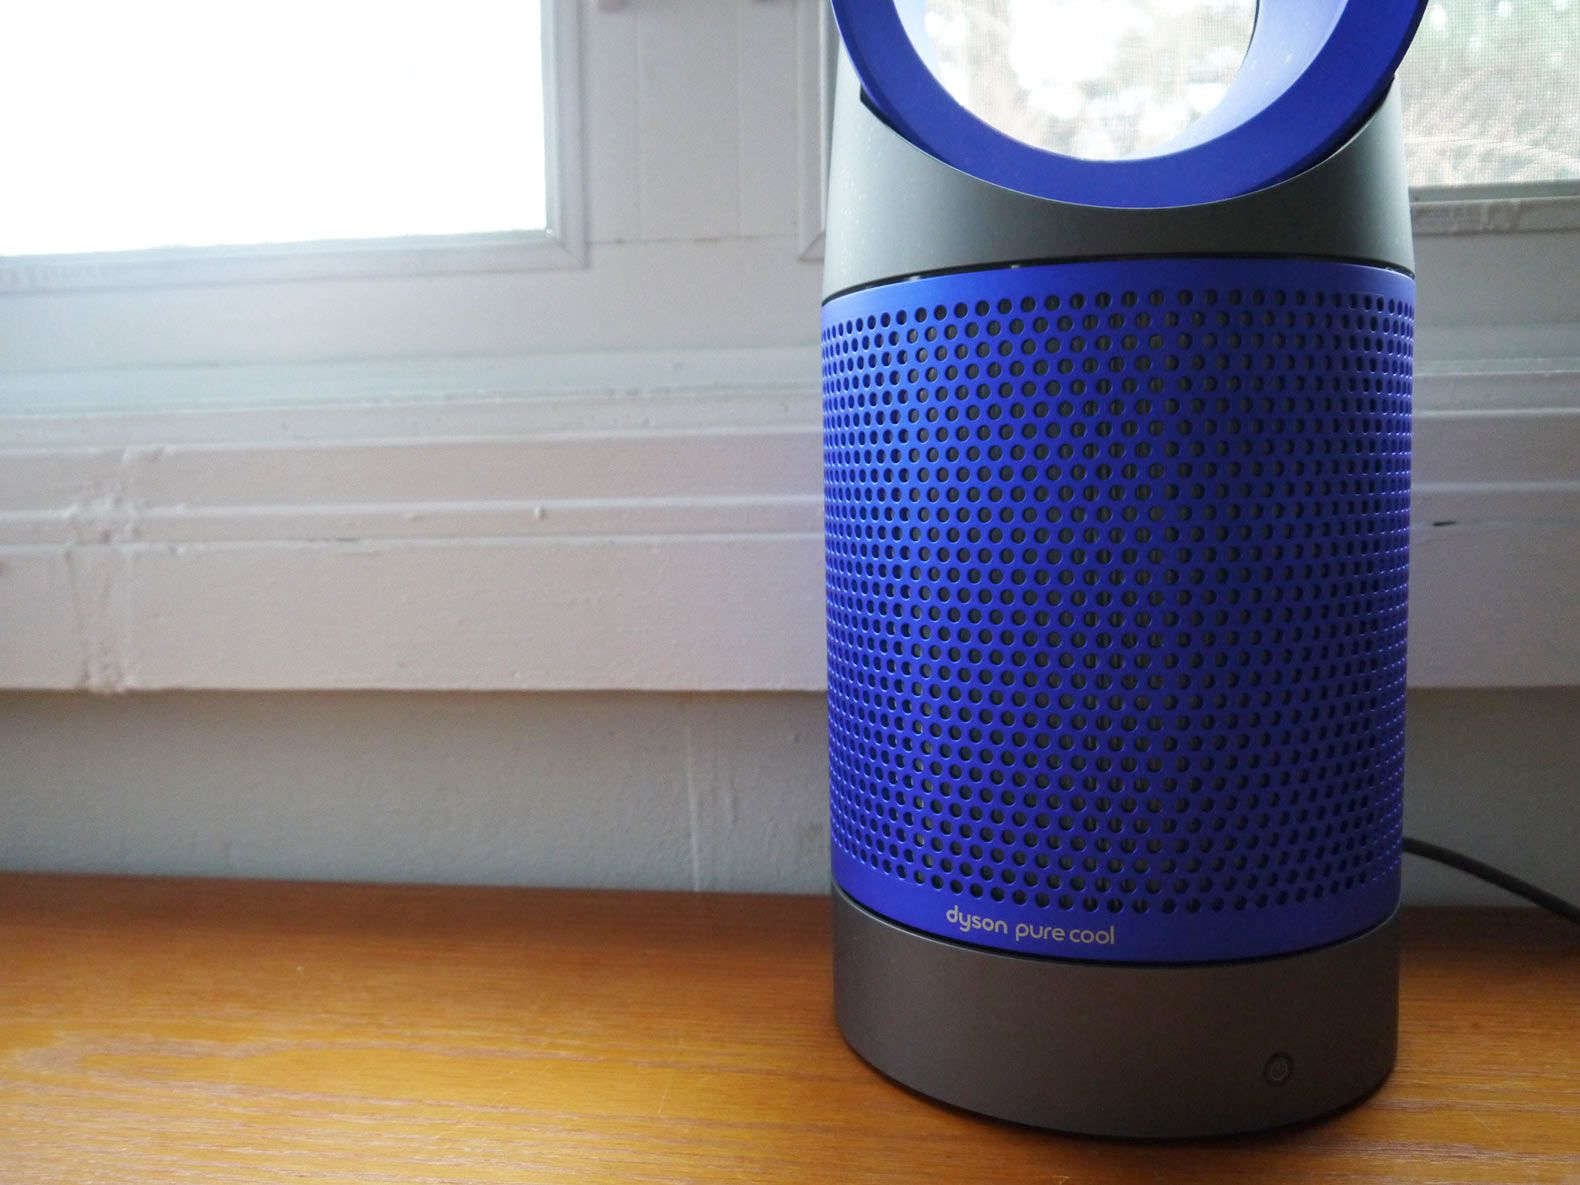 Dyson s super quiet Pure Cool air purifier removes 99 95  of harmful  particles in the air. Dyson s super quiet Pure Cool air purifier removes 99 95  of